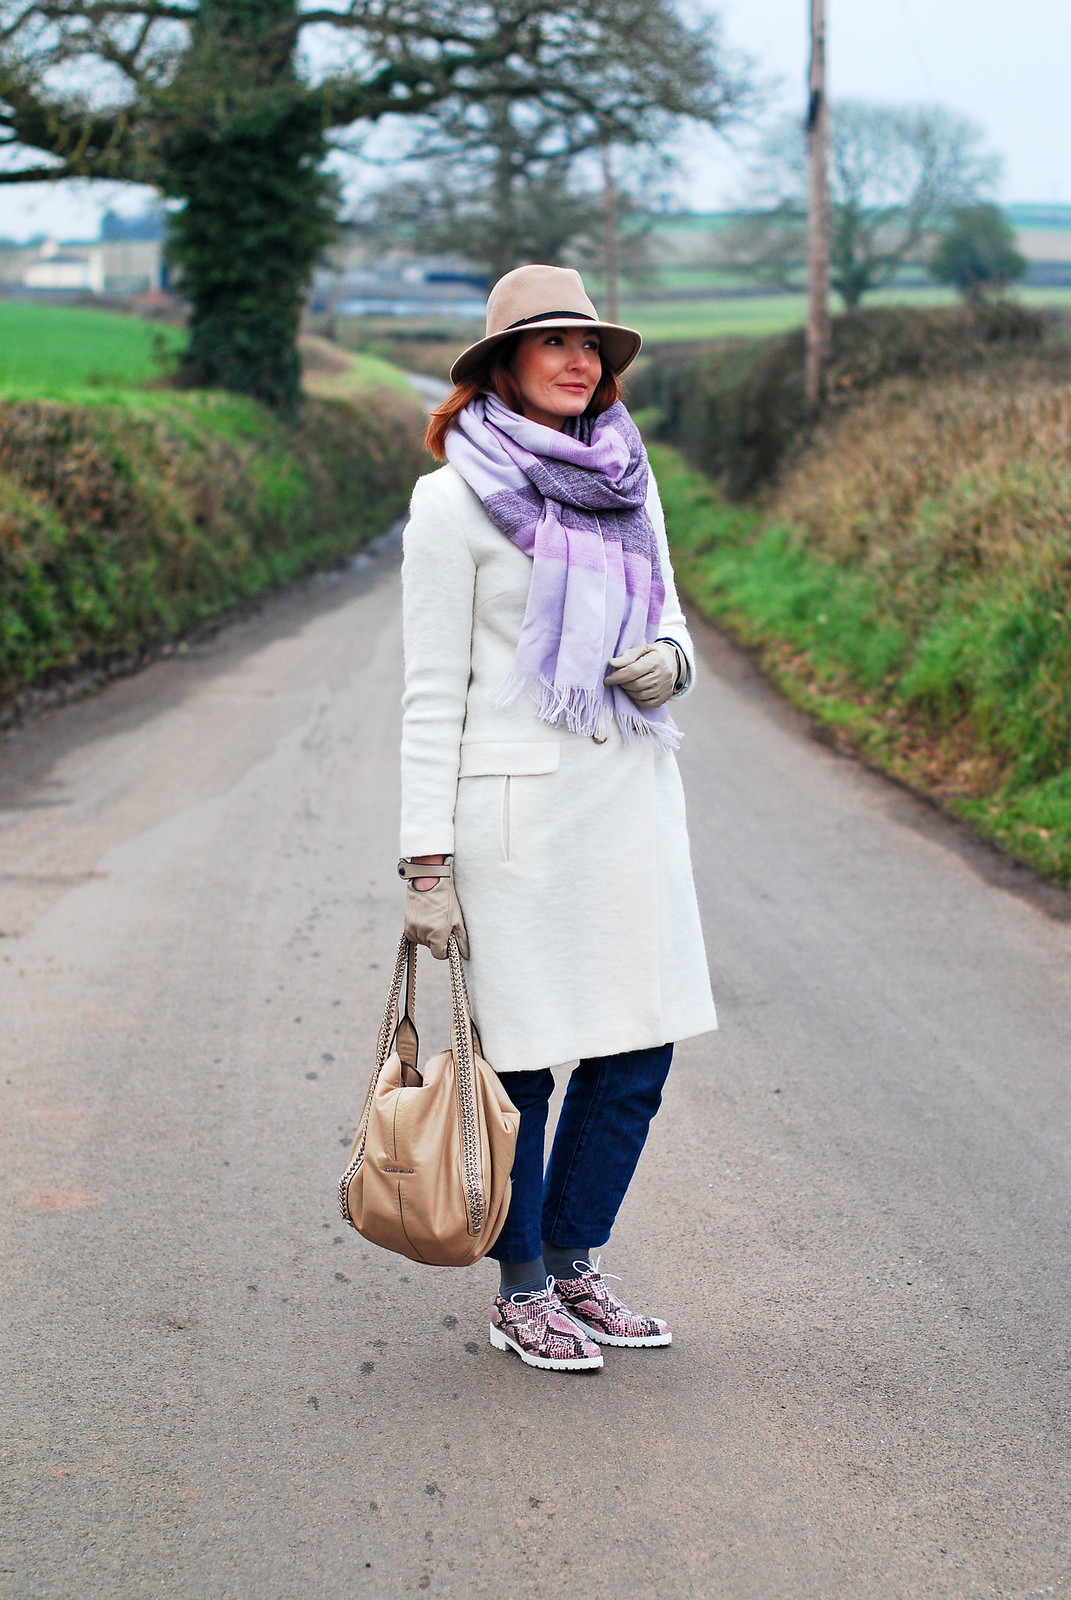 Cold weather outfit: Long white wool coat  oversized lilac scarf  camel fedora  dark wash boyfriend jeans  pink snakeskin lace up shoes | Not Dressed As Lamb, over 40 style